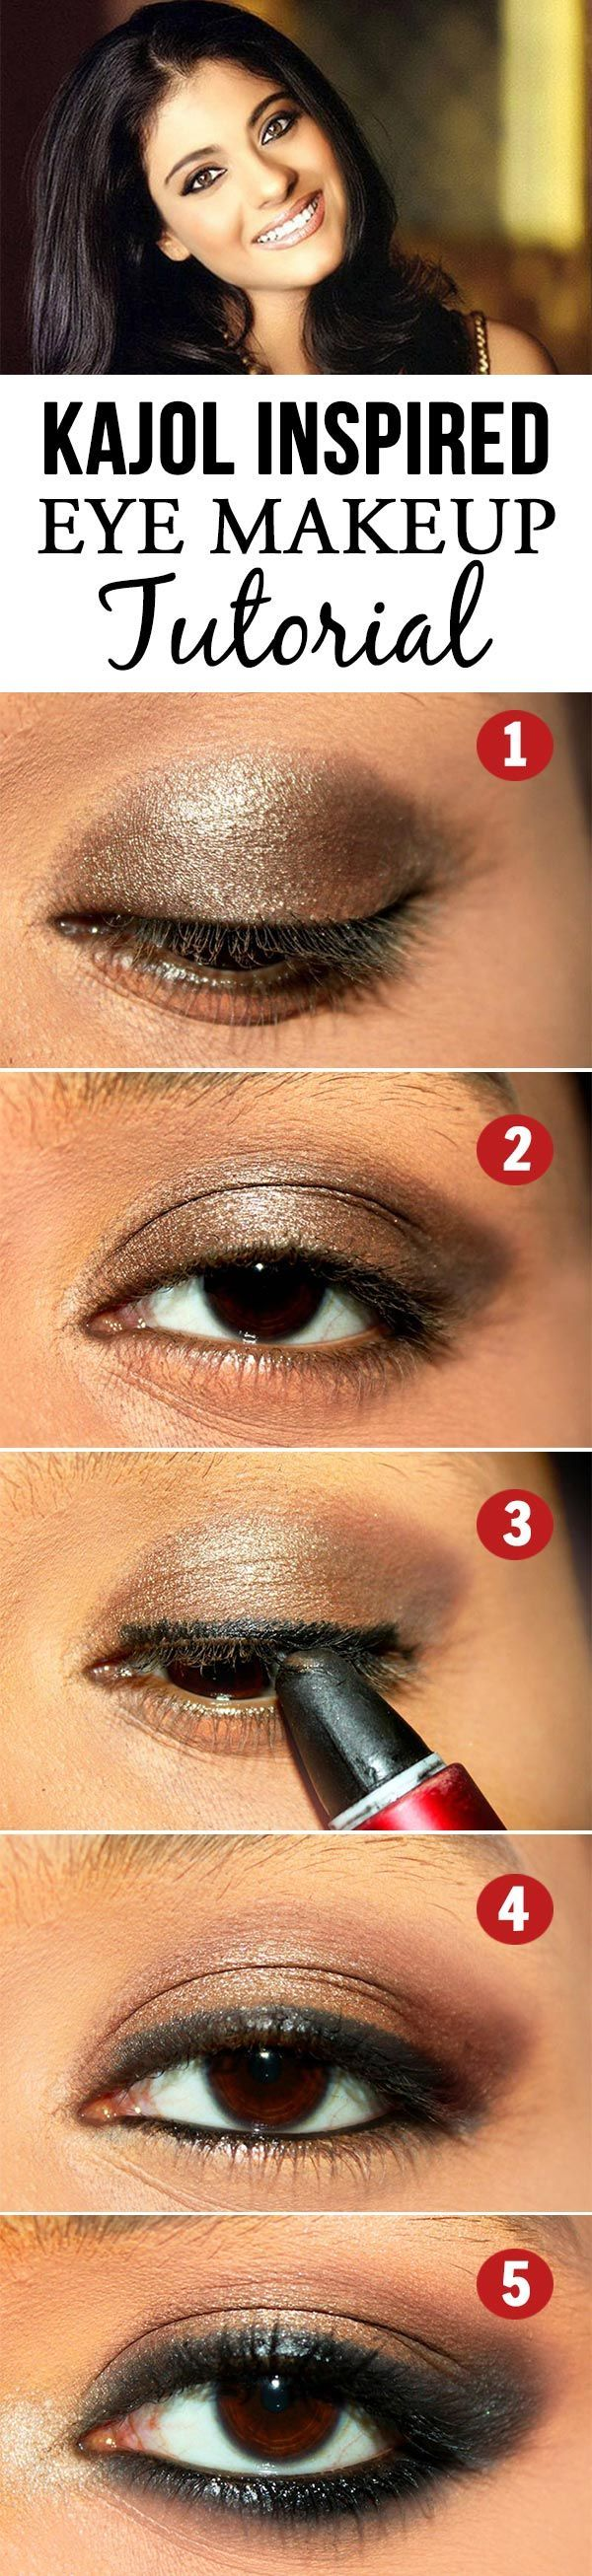 Then this Kajol eye makeup tutorial is for you to try and get